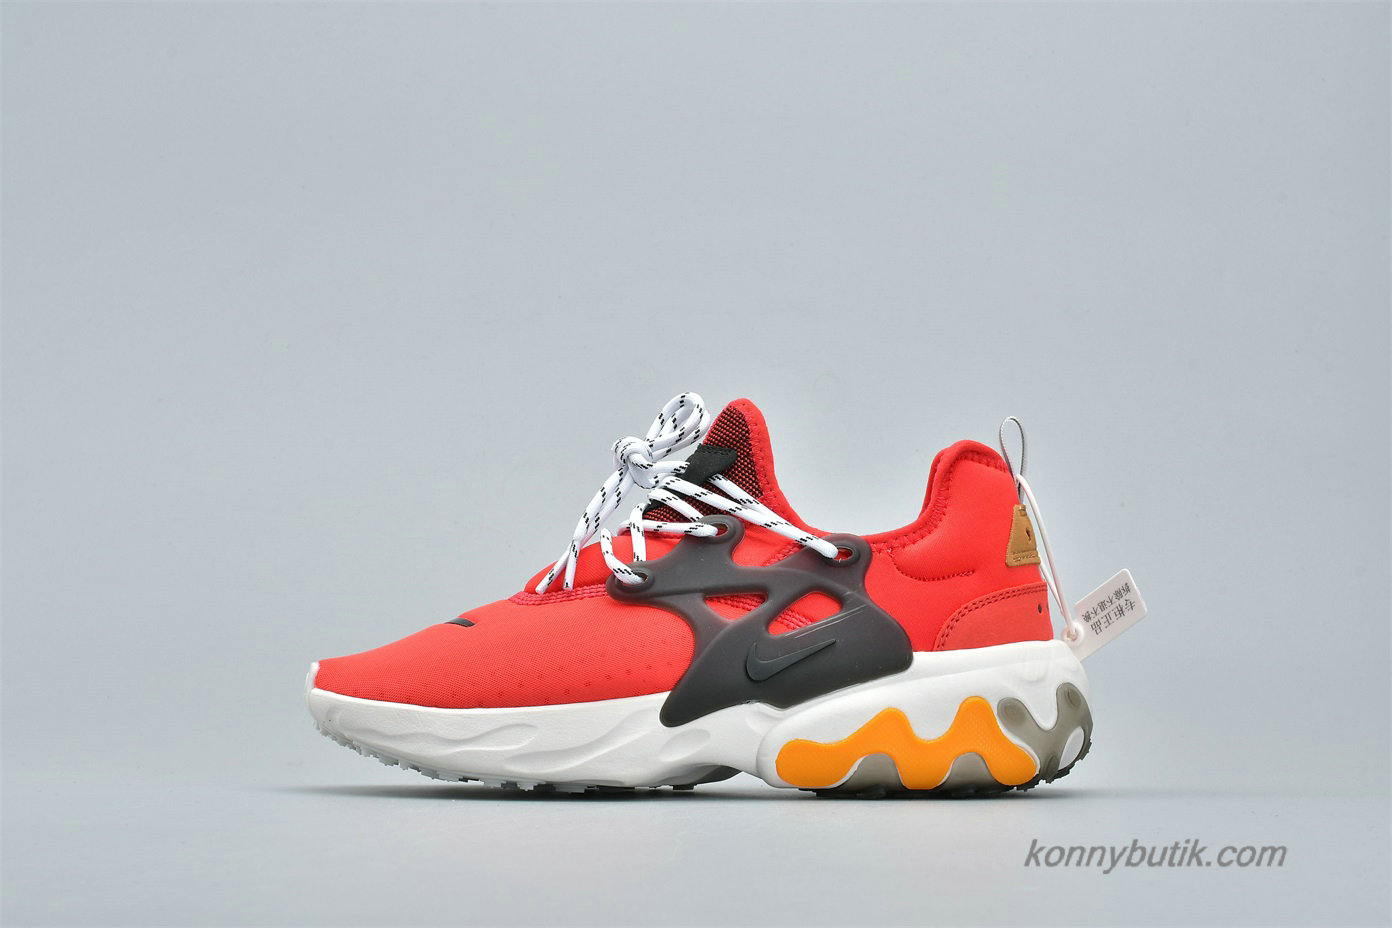 Nike Presto React Unisex Sko Rød / Sort / Orange (AV2605-200)